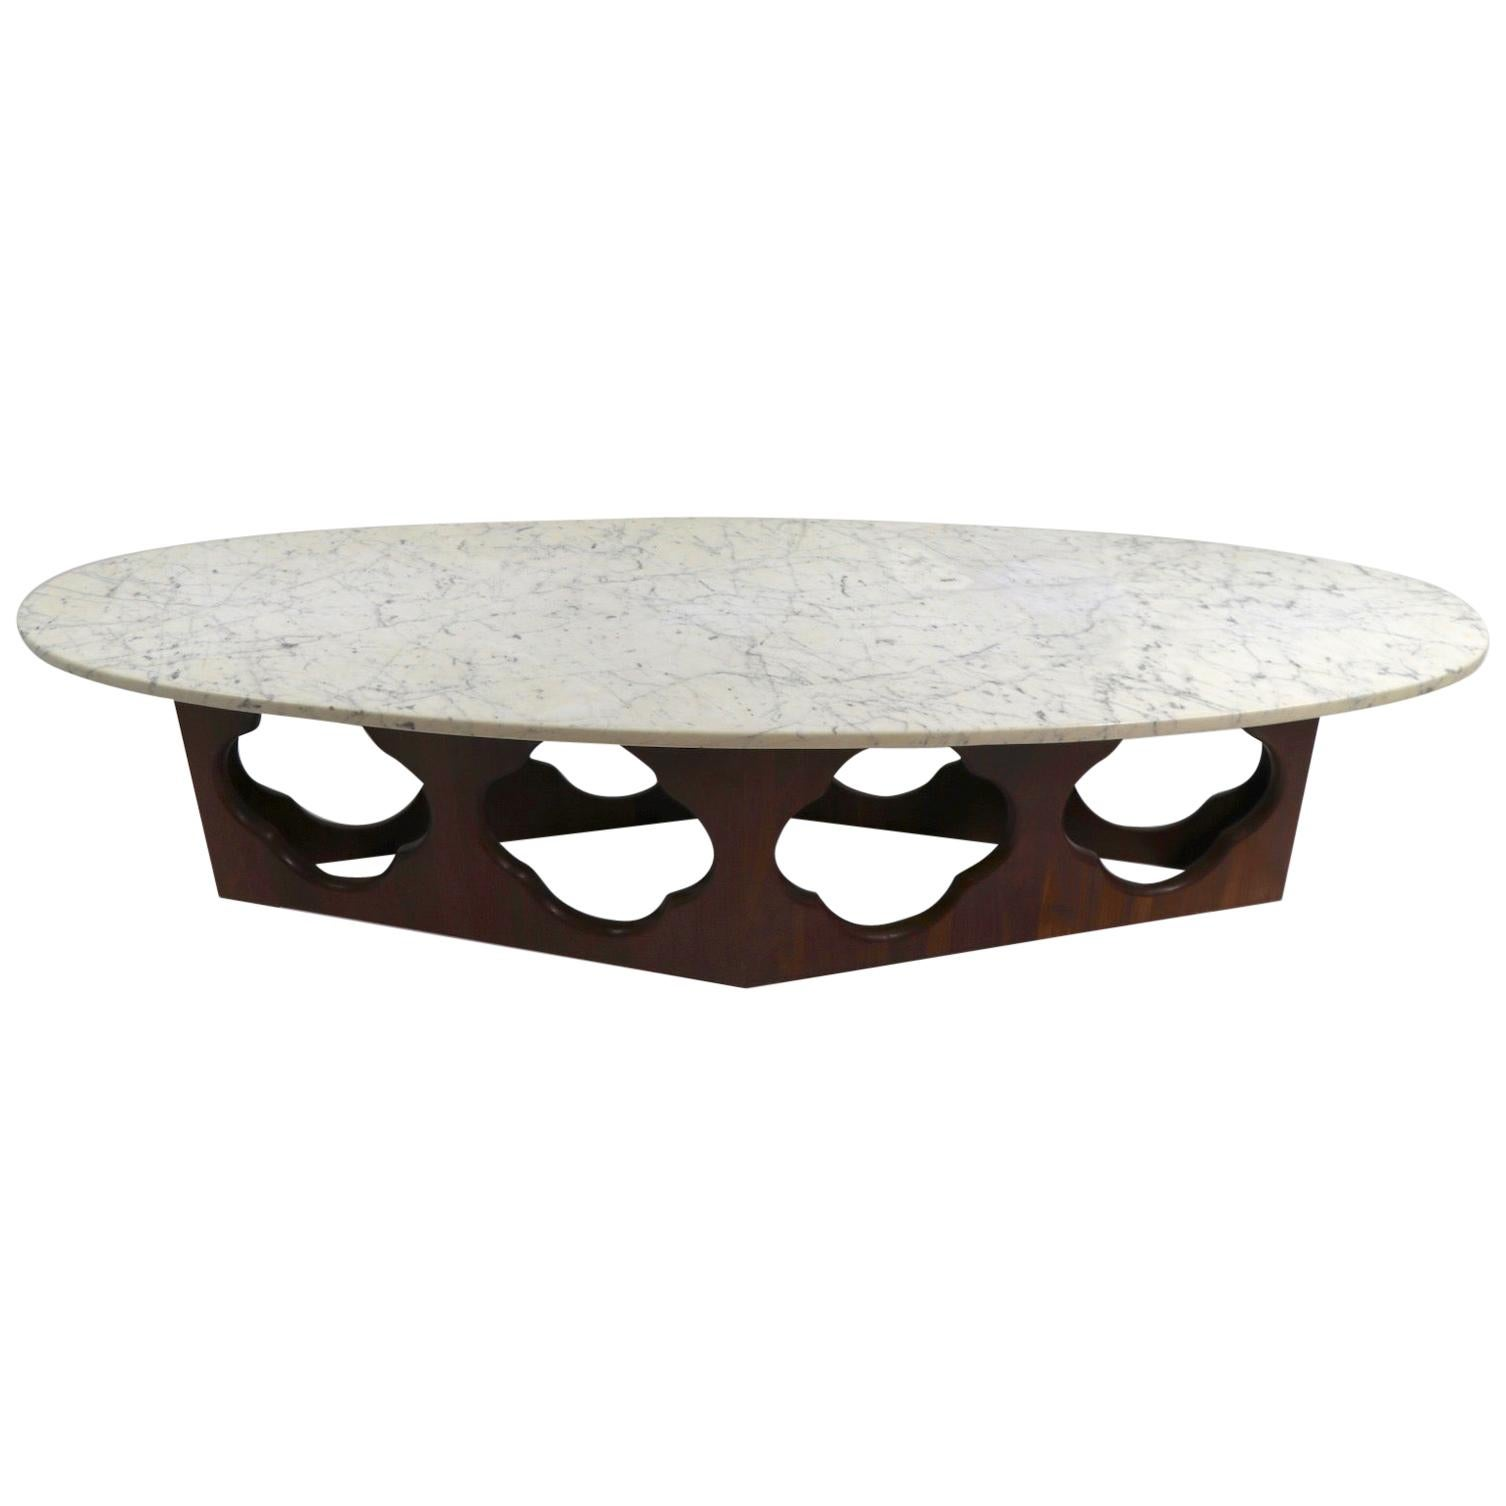 Ordinaire Mid Century Surfboard Marble Top Coffee Table With Walnut Quatrefoil Motif  Base